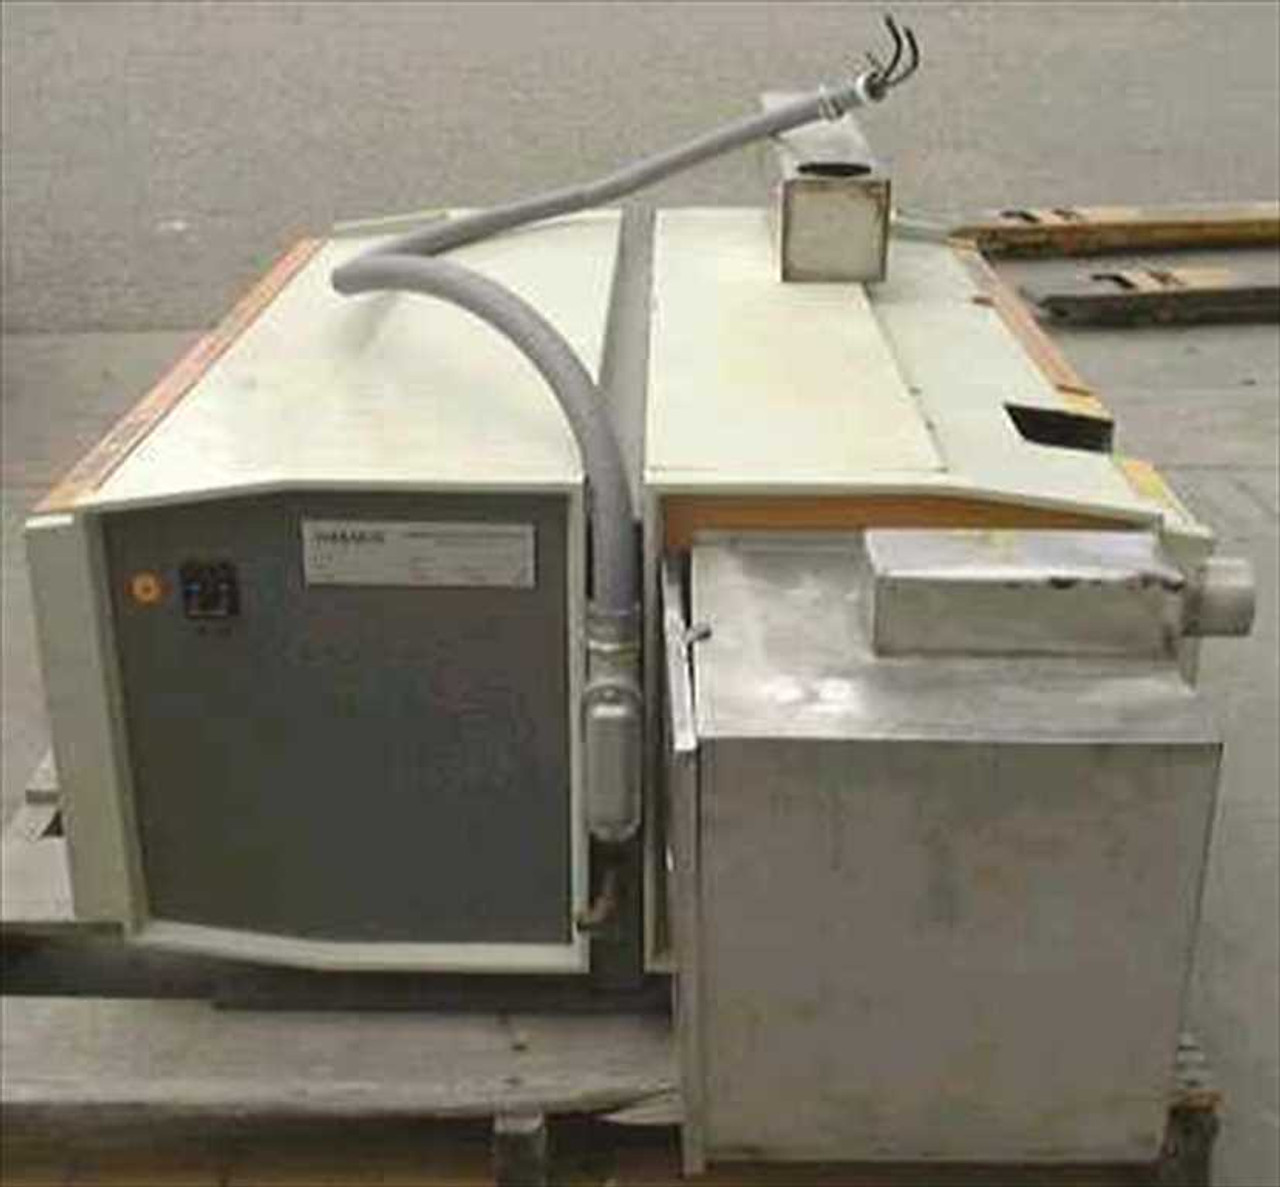 Thermco Products Mb 71 Mini Brute Diffusion Furnace For 2